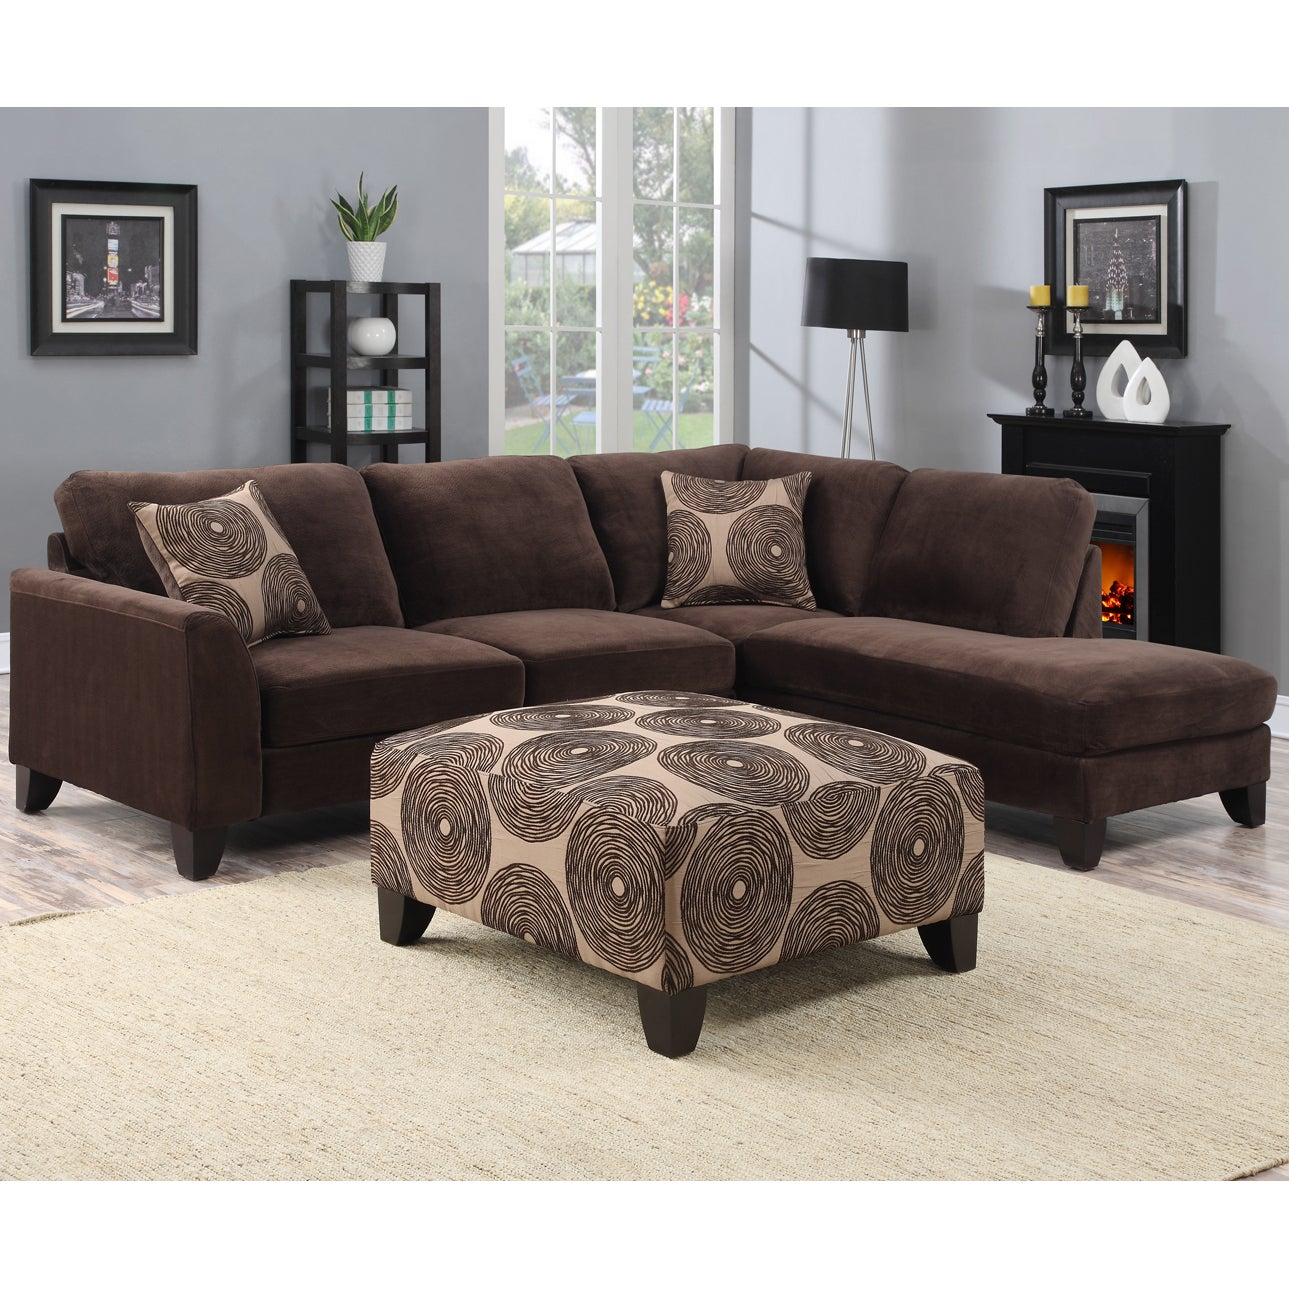 Cool Porter Malibu Chocolate Brown Sectional Sofa With Ottoman Ibusinesslaw Wood Chair Design Ideas Ibusinesslaworg